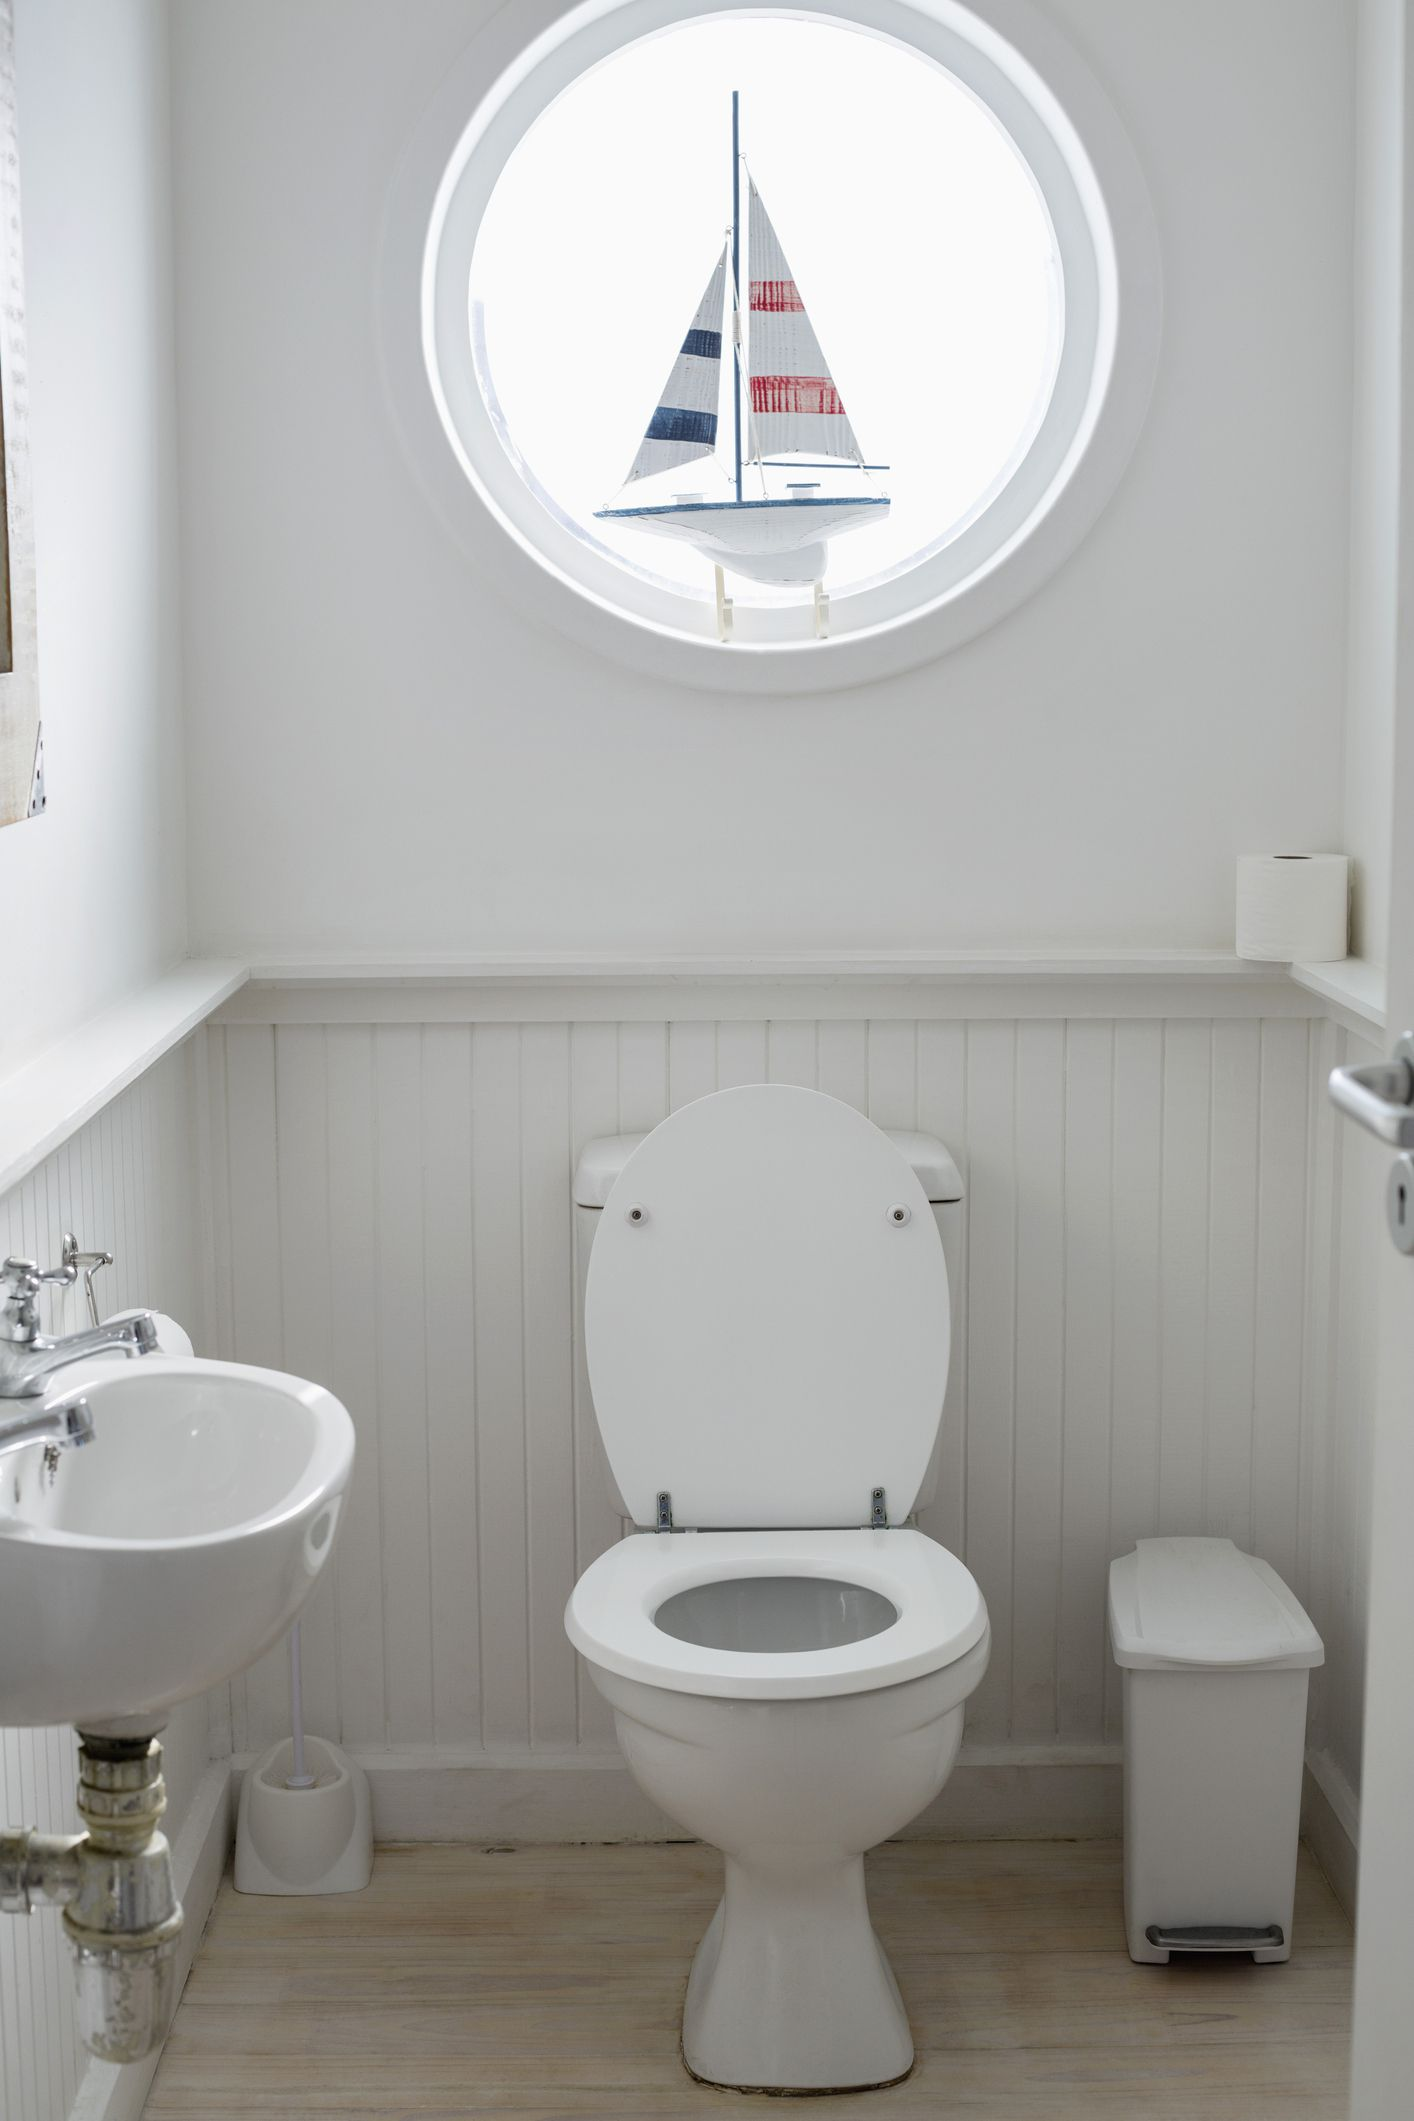 how to remodel a small kitchen aid pasta attachments half-bath ideas: make this tiny space shine